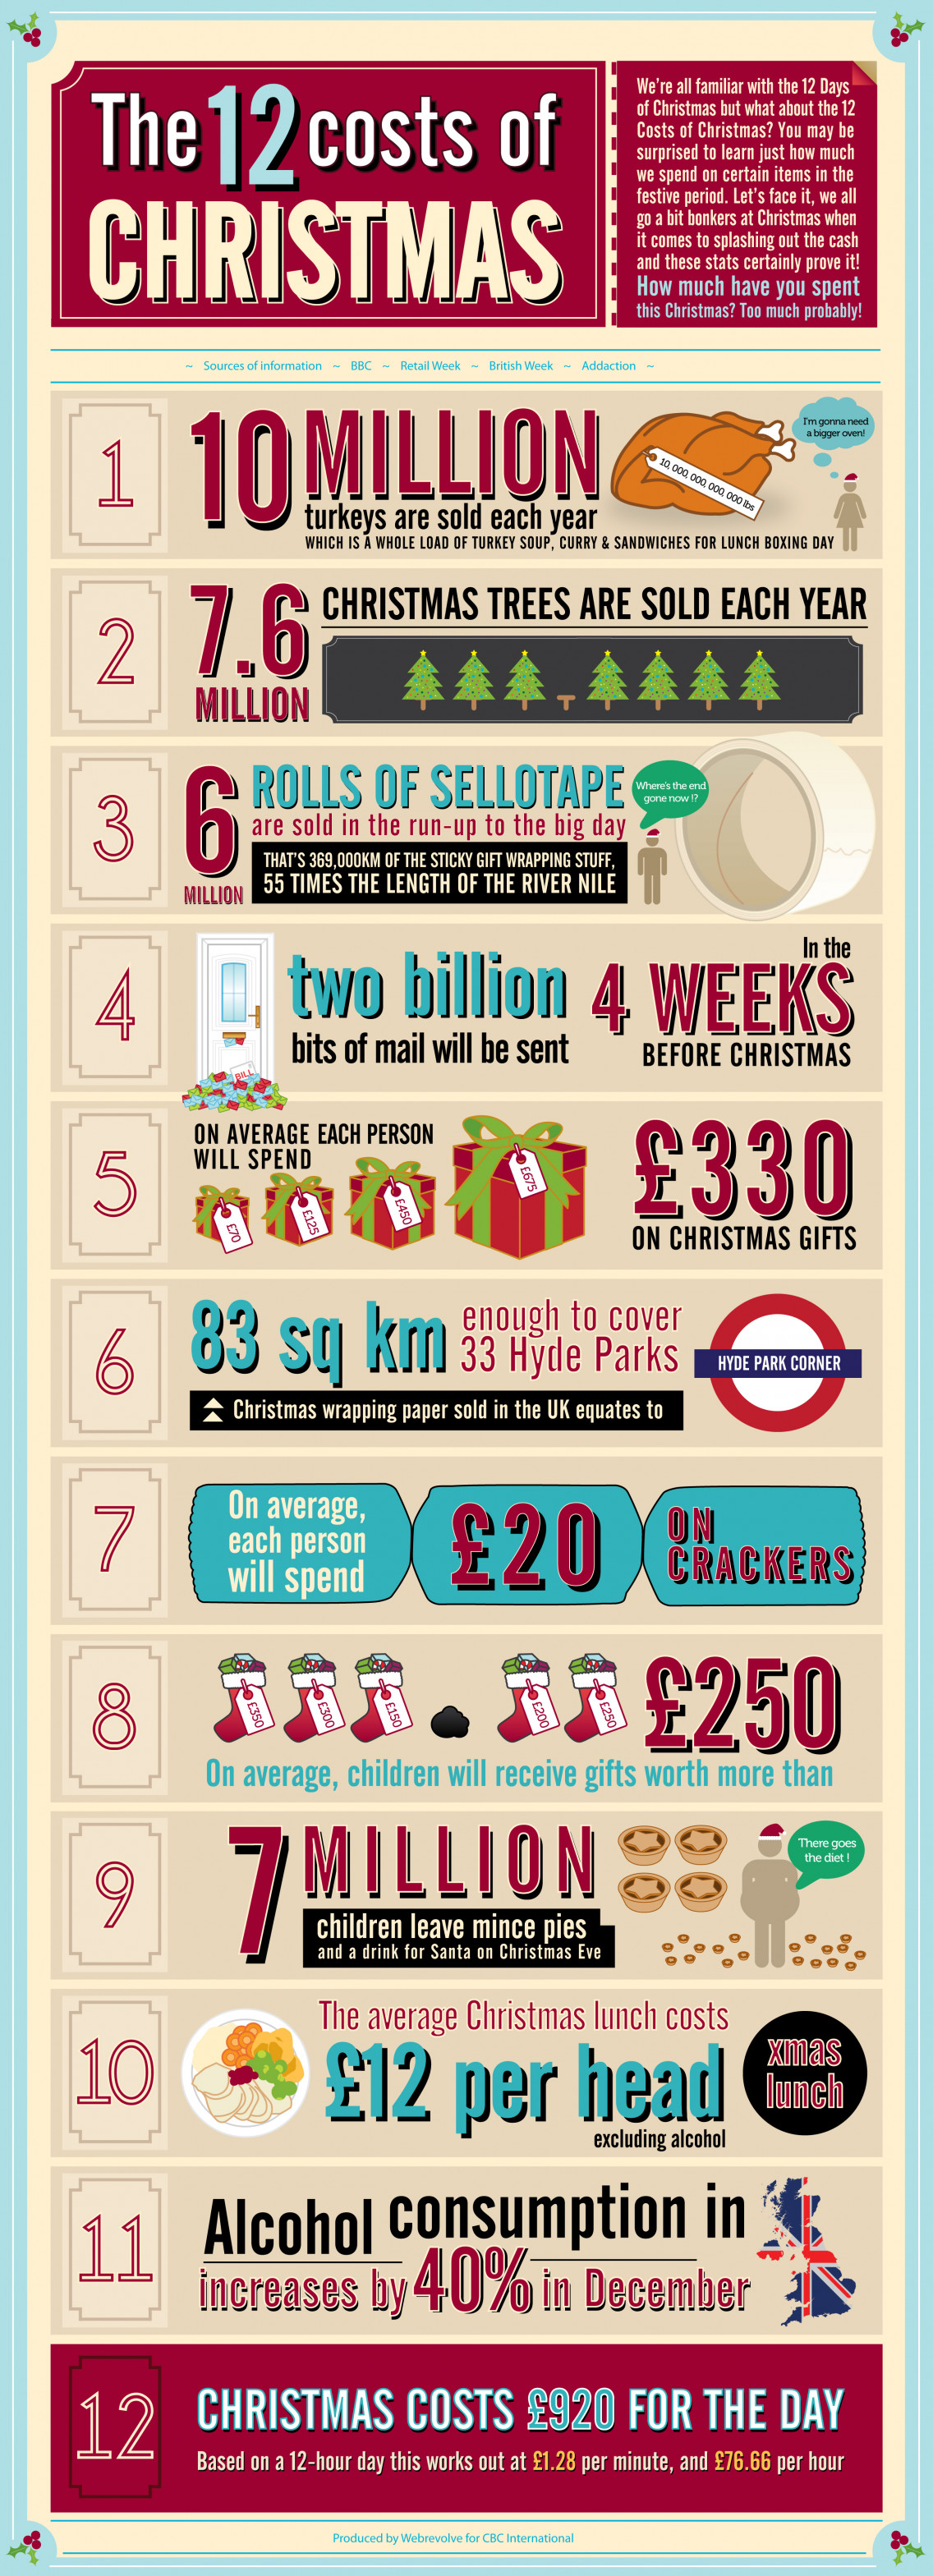 Costs of Christmas